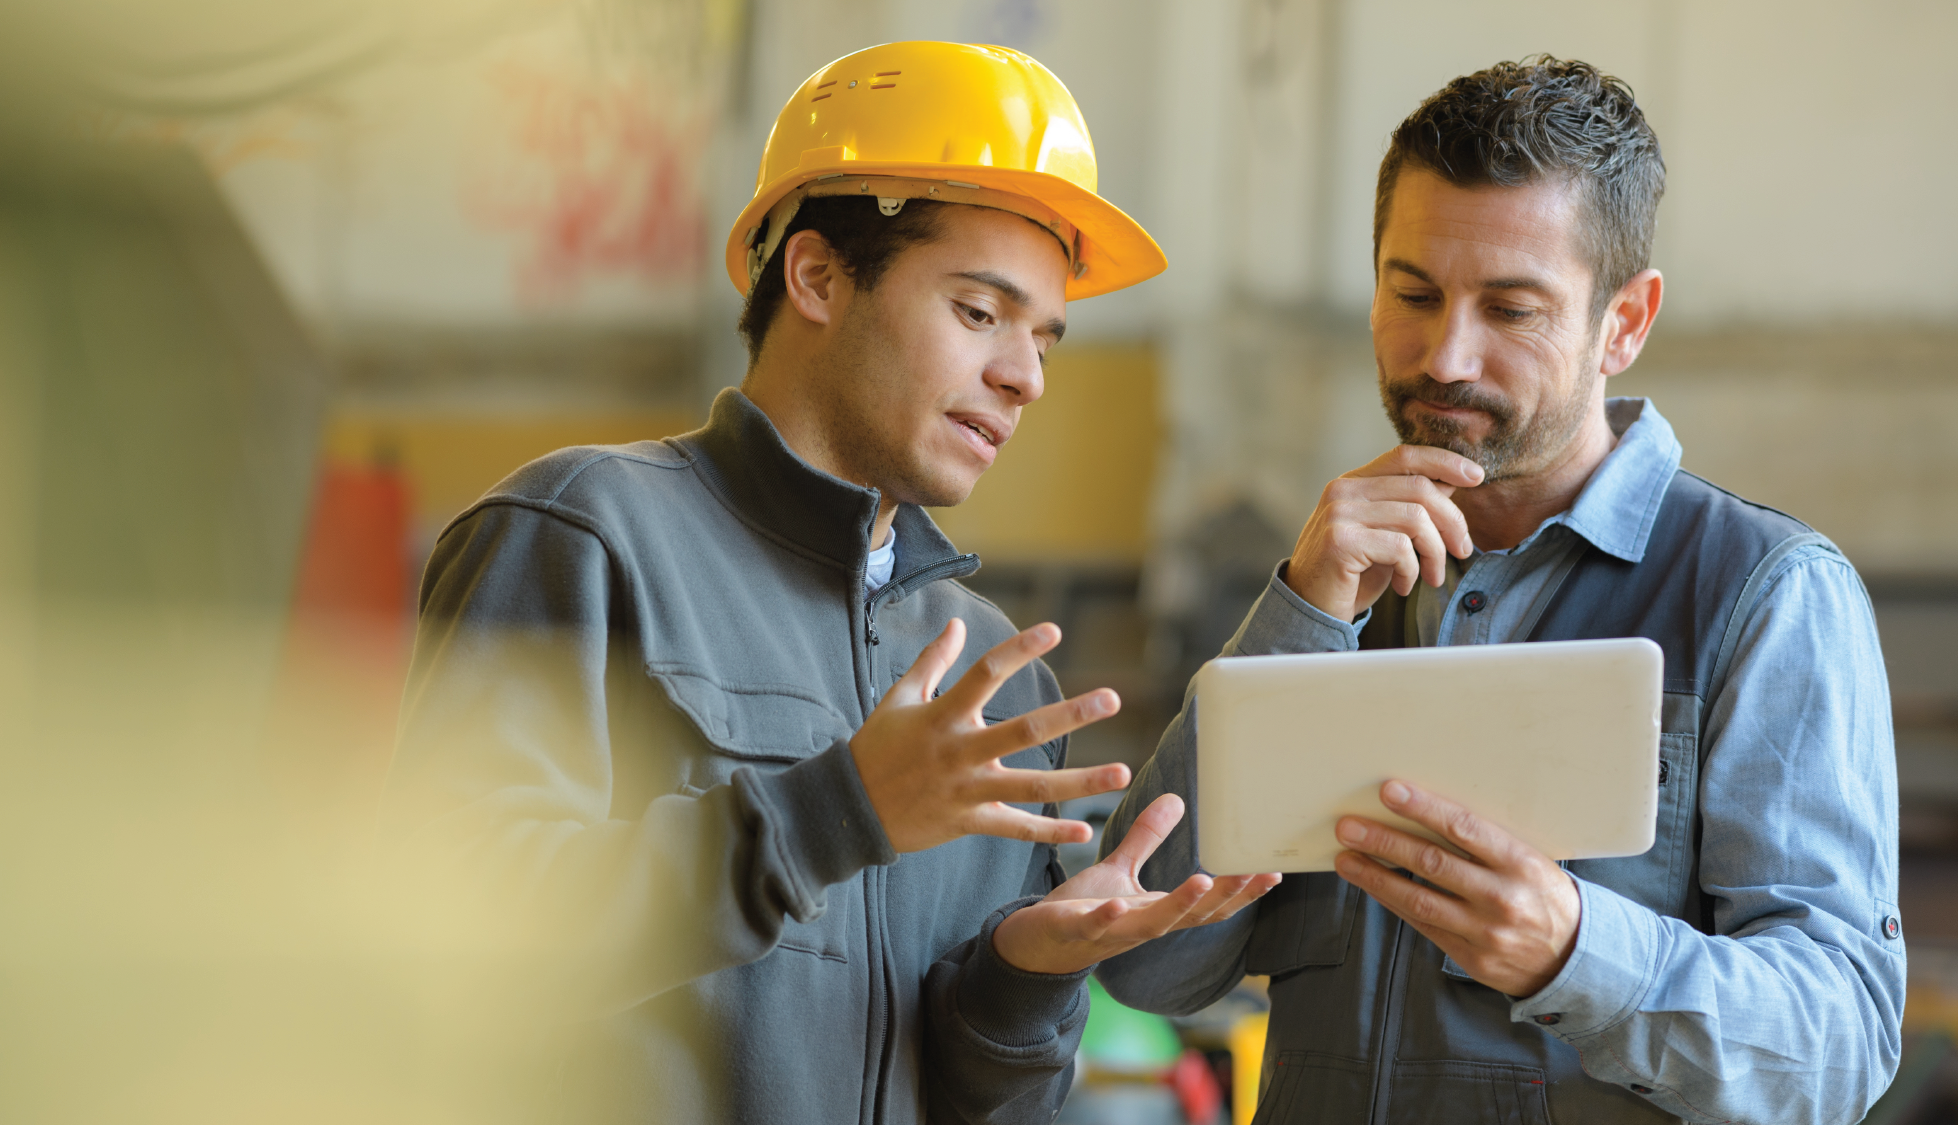 Your LMS is Failing Your Mobile Workers—There's a Better Way to Train